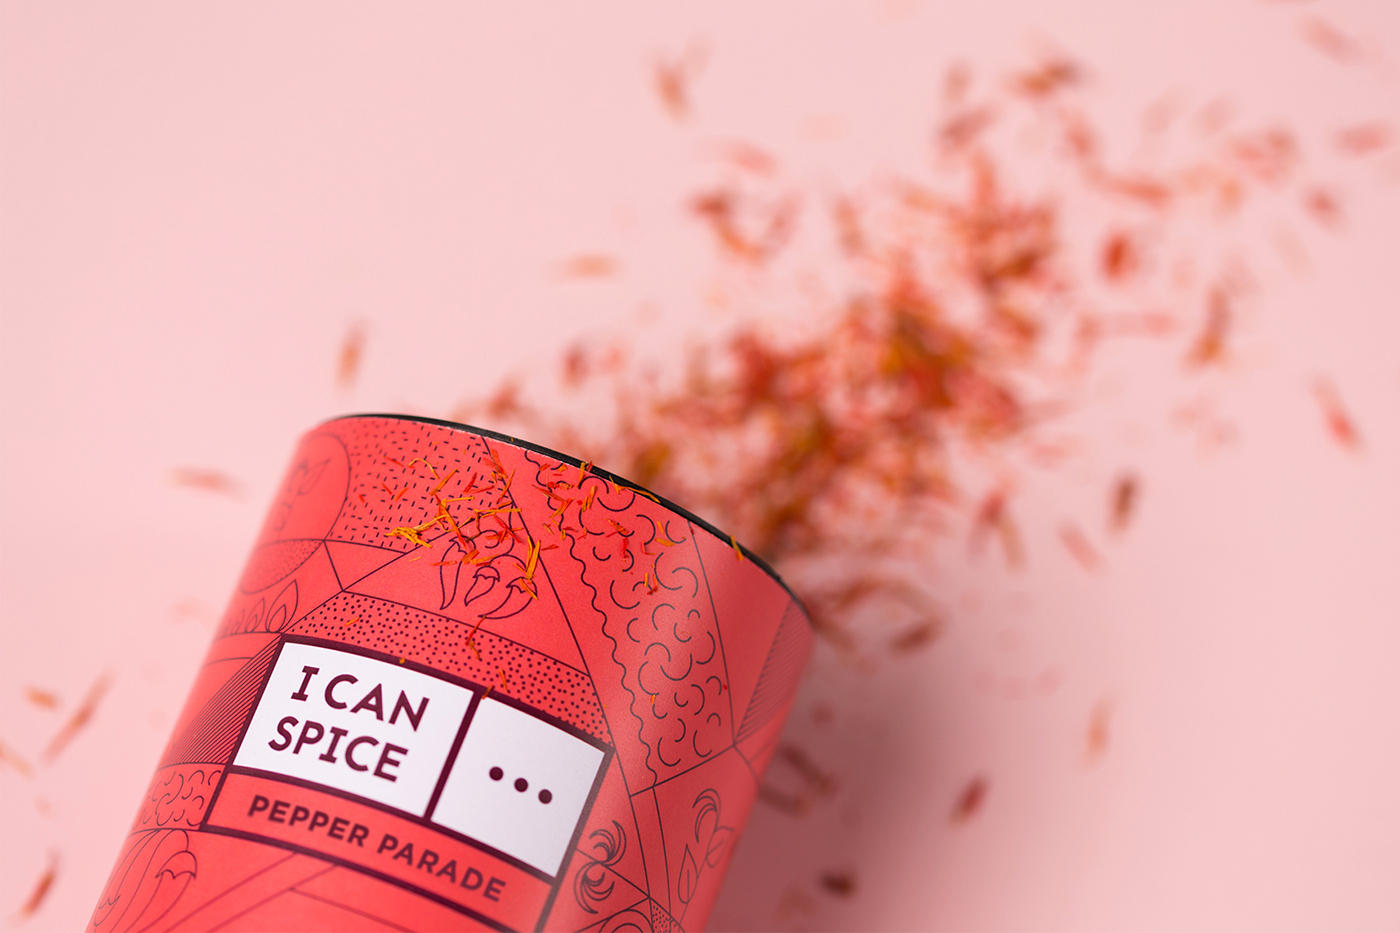 i can spice Packaging branding  graphic design  spice Culinary Food  cooking creative ILLUSTRATION